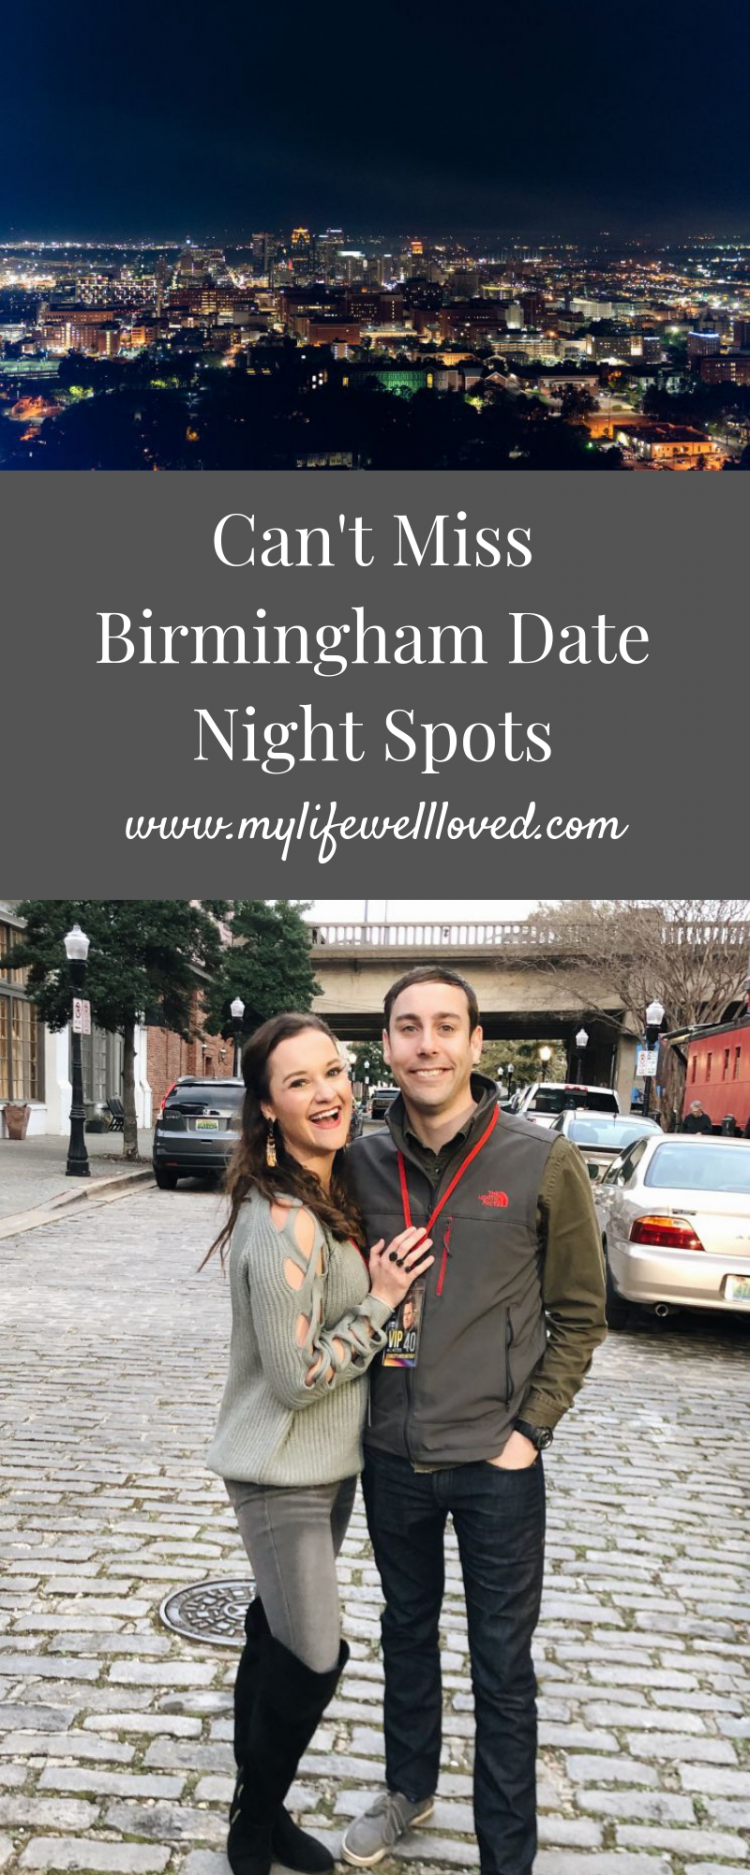 Sharing some can't miss Birmingham date night spots by Alabama lifestyle + fashion blogger My Life Well Loved // #datenight // #bestofbirmingham // #datenightideas // #bham